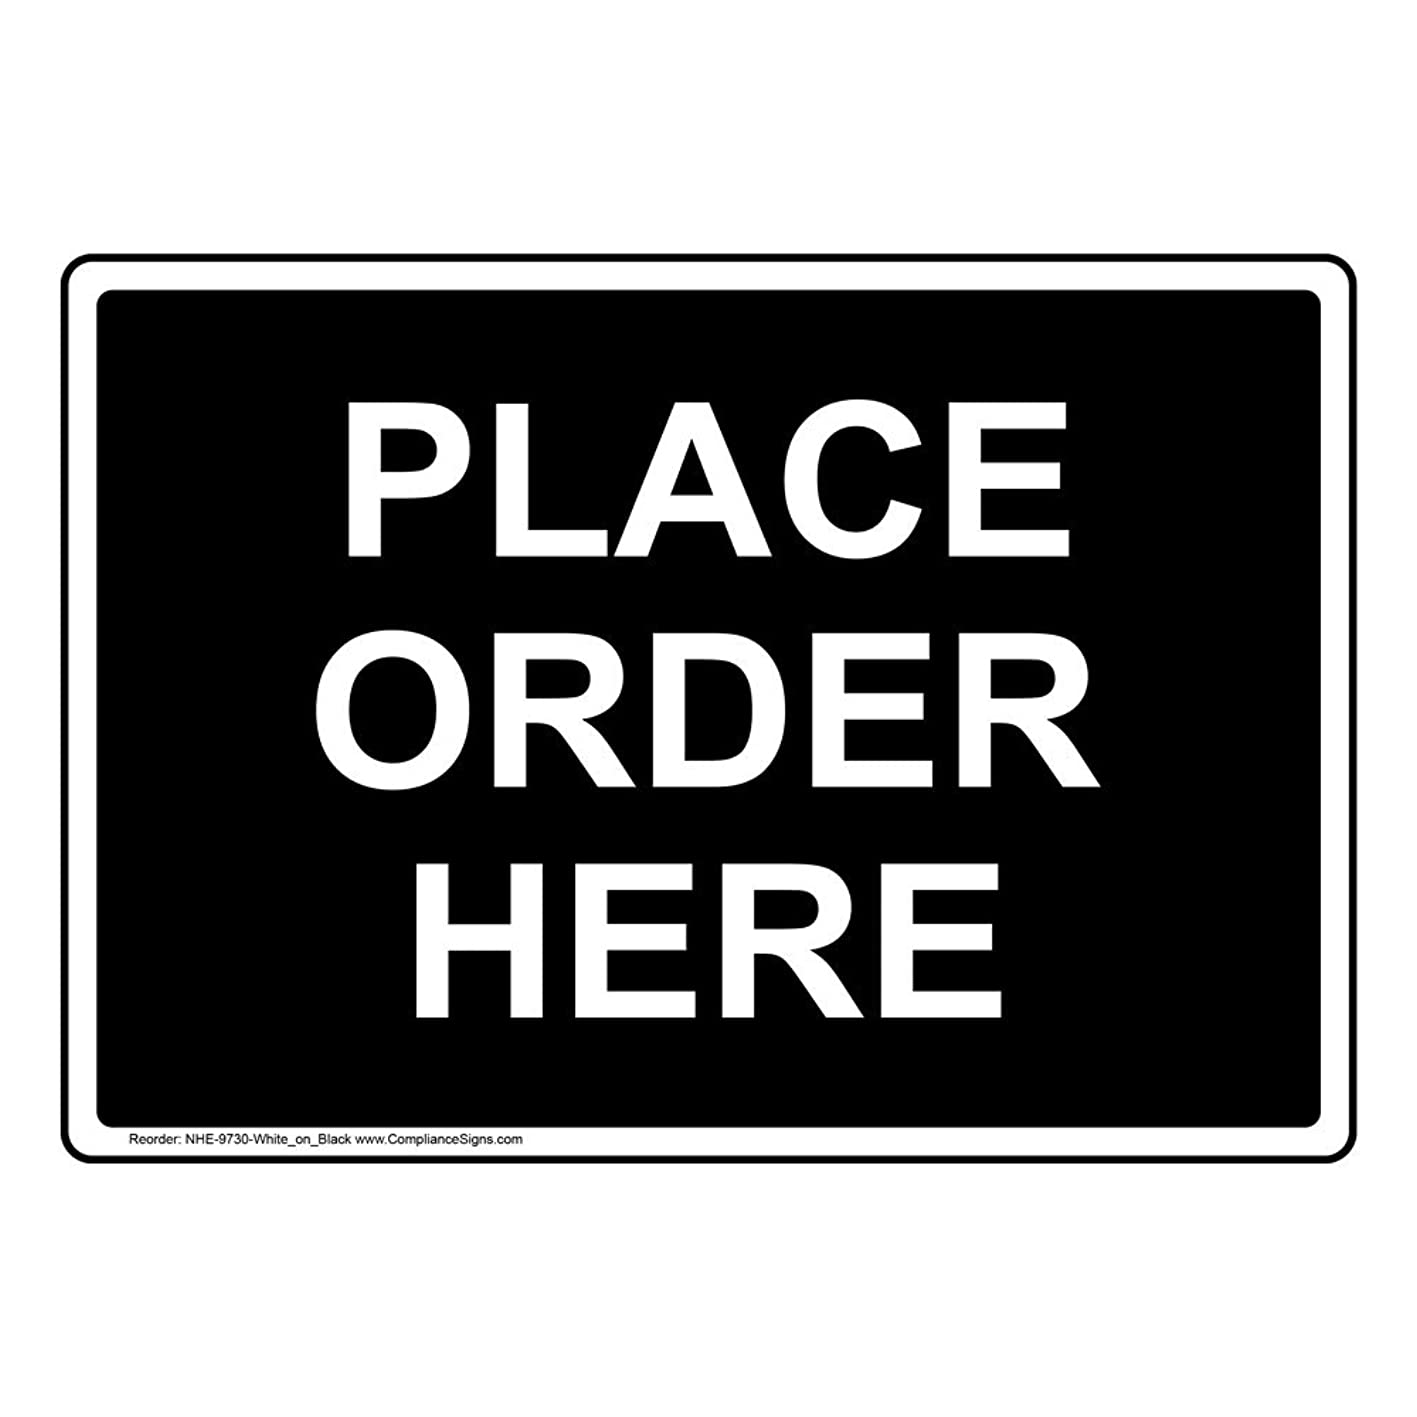 Place Order Here Sign, 14x10 in. Aluminum for Wayfinding by ComplianceSigns trejxblgipn689